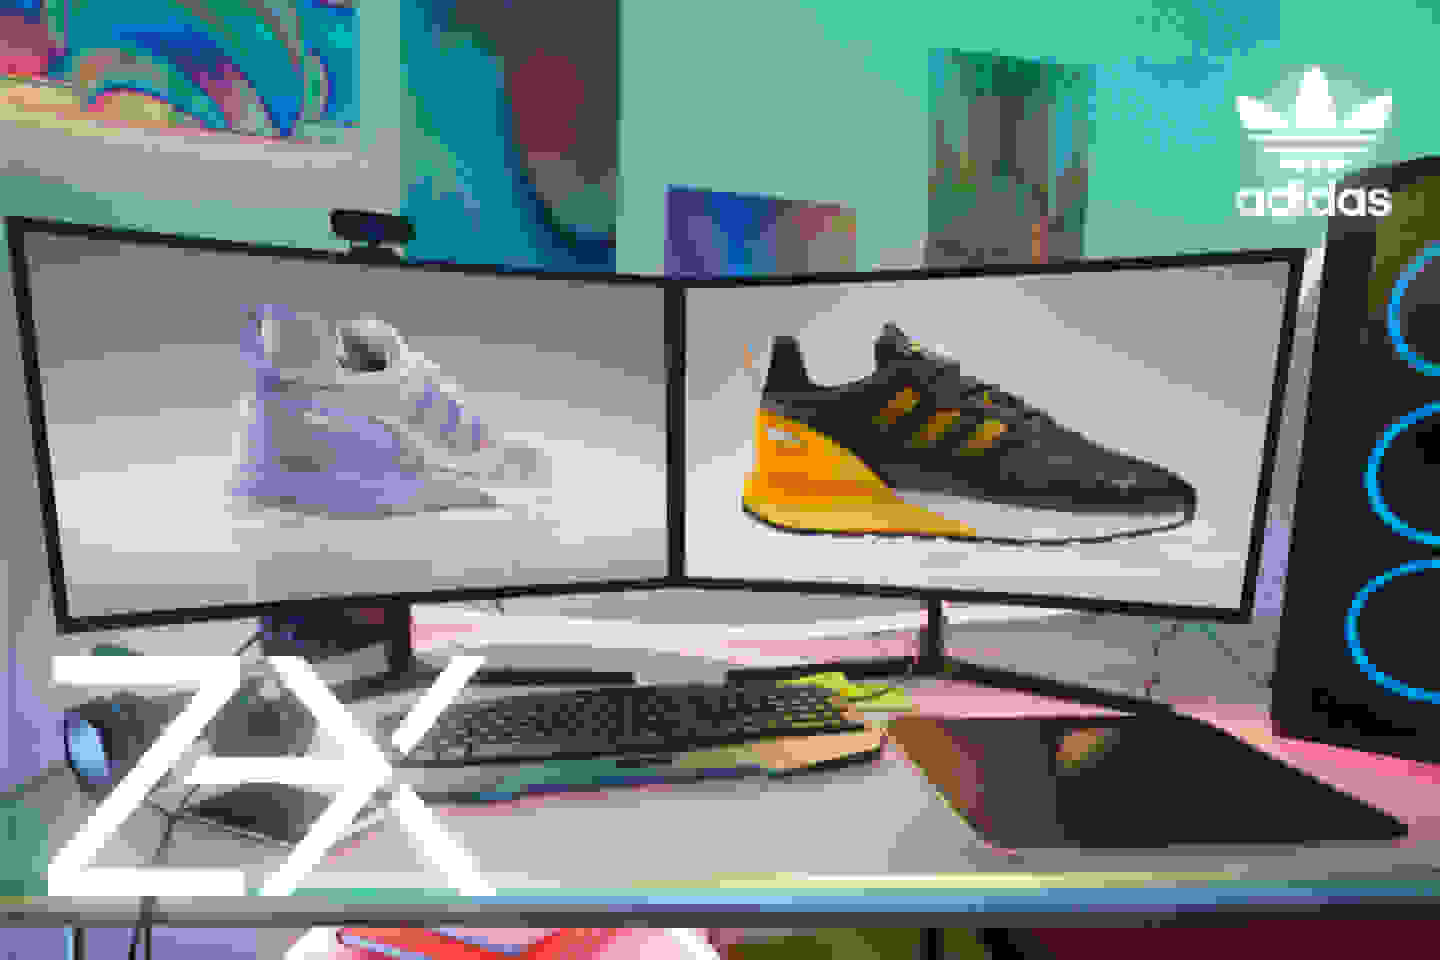 Two ZX 2K Boost 2.0 shoes are seen on two large monitors with the screens' glow reflecting onto the desk.